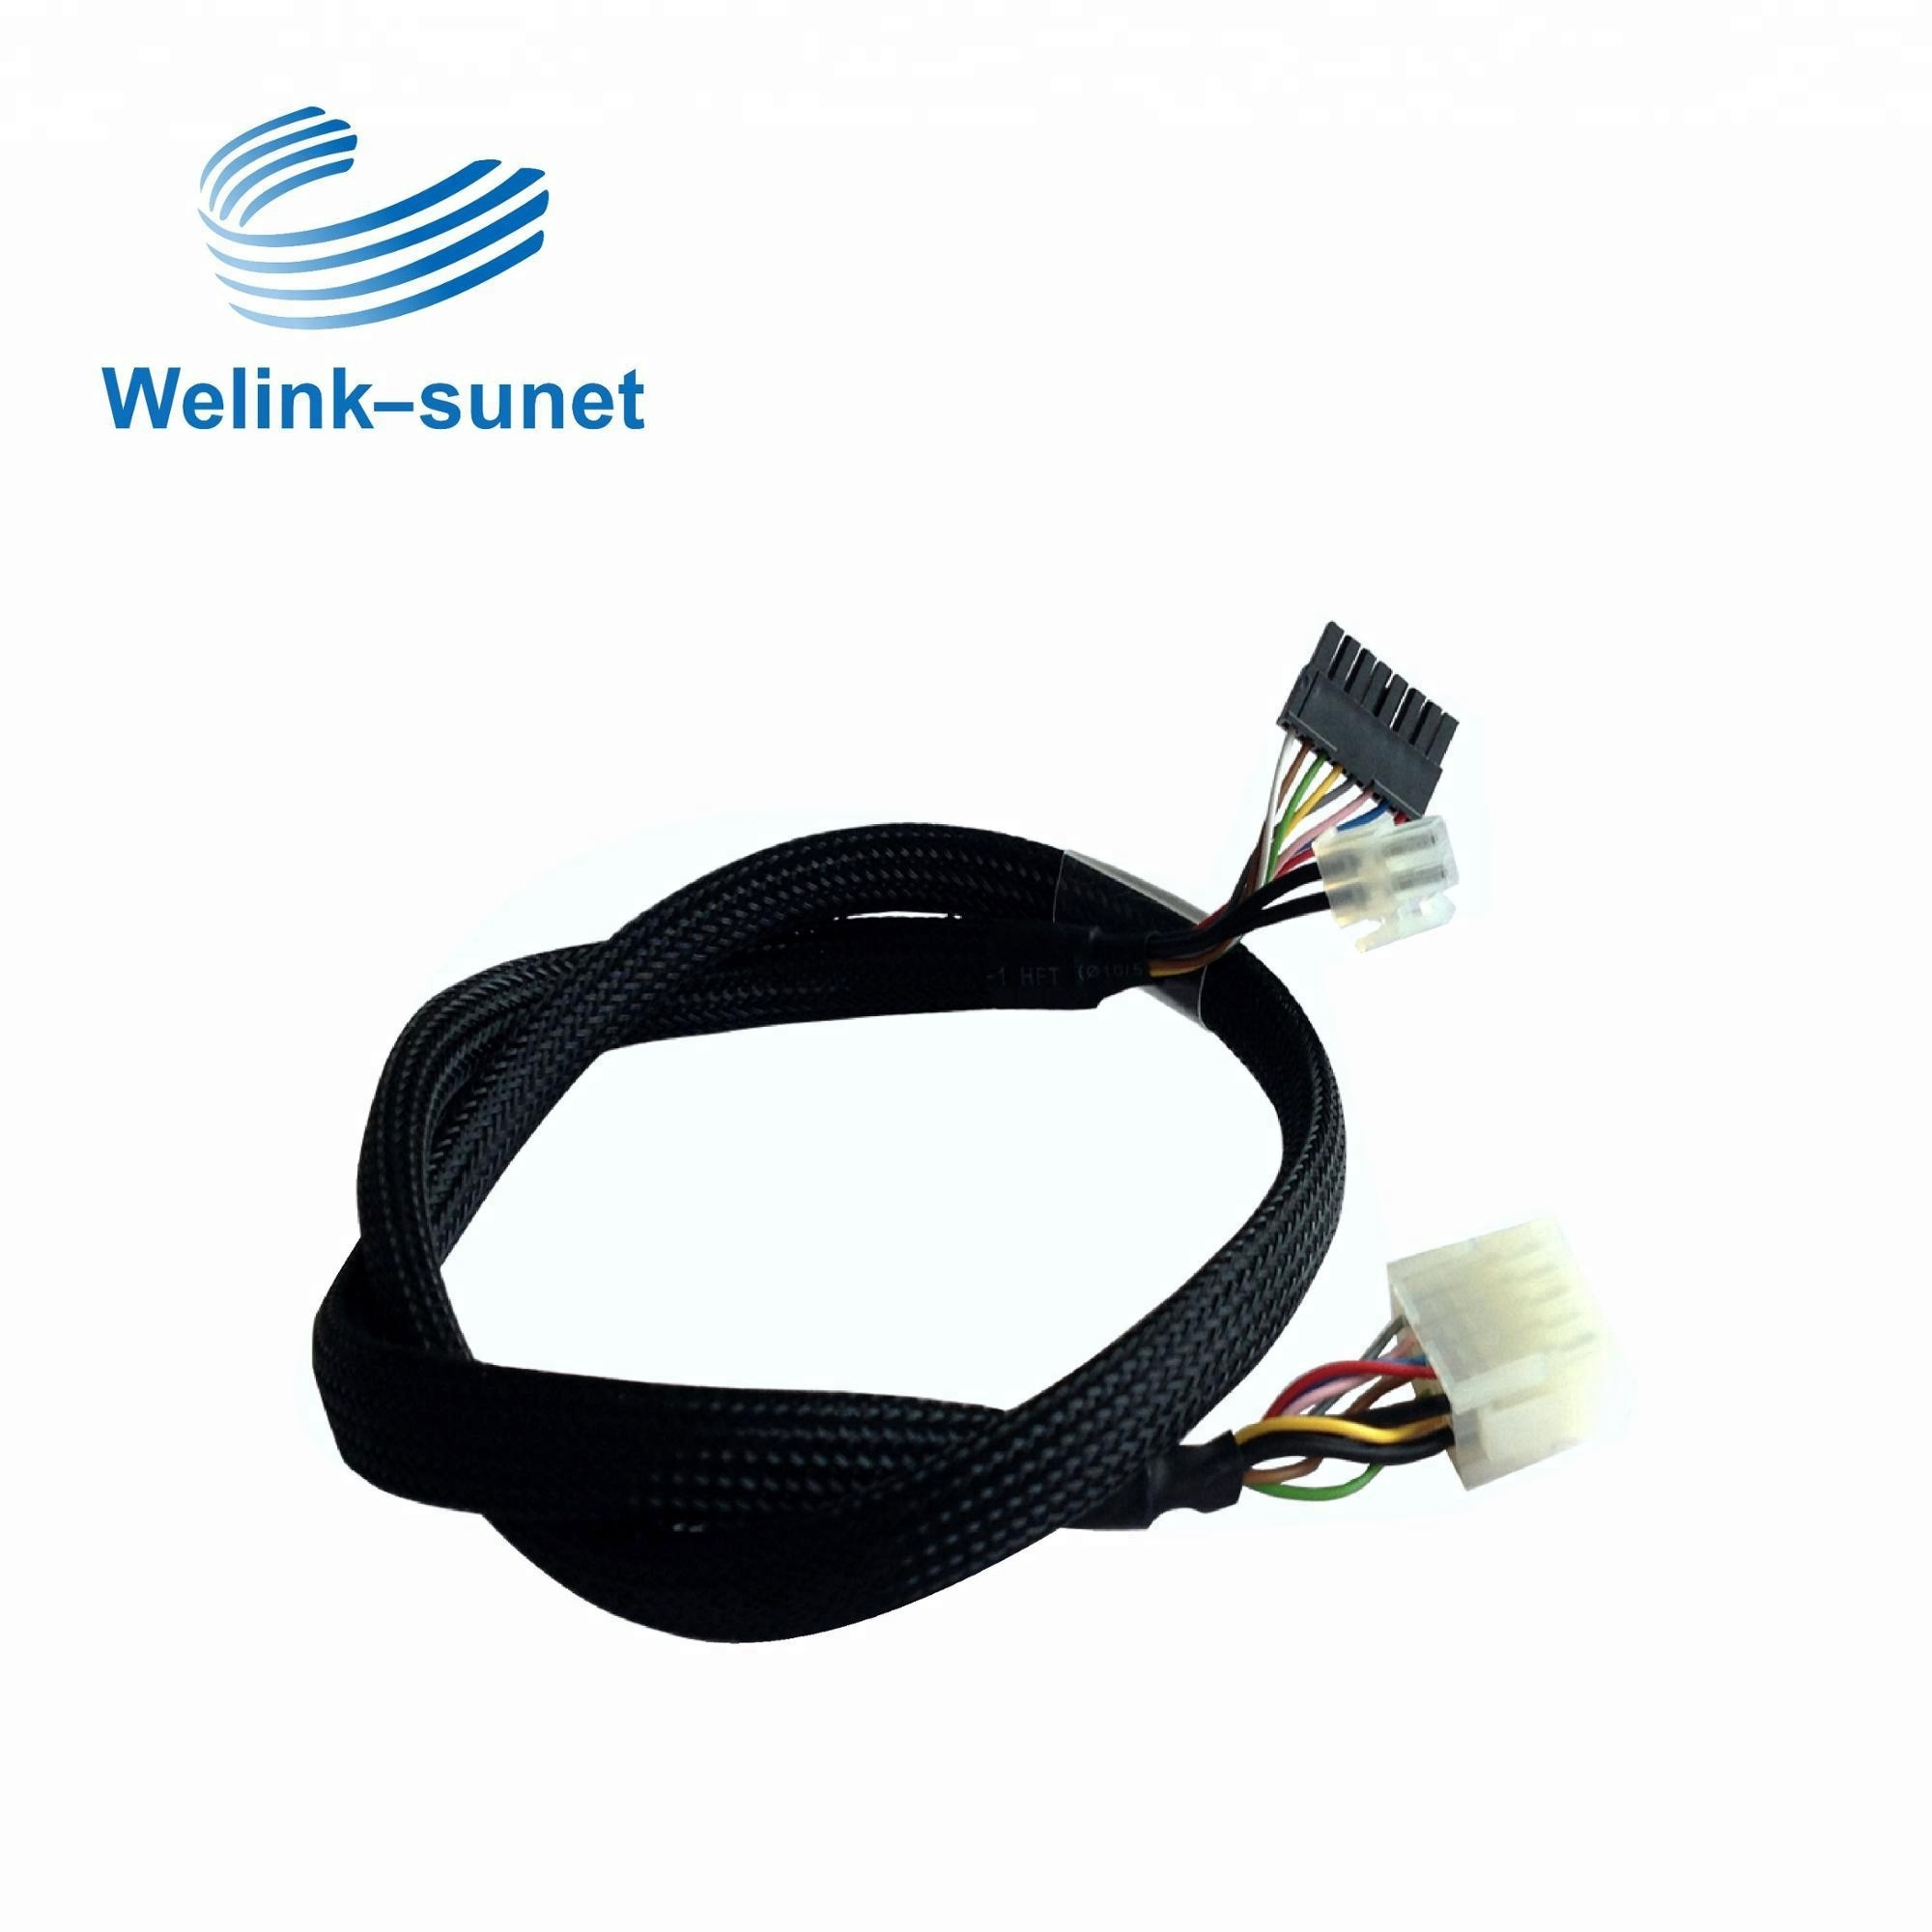 Superb Helukable Super Flexible Cable Wire Harness For Industrial Robot Wiring Cloud Brecesaoduqqnet